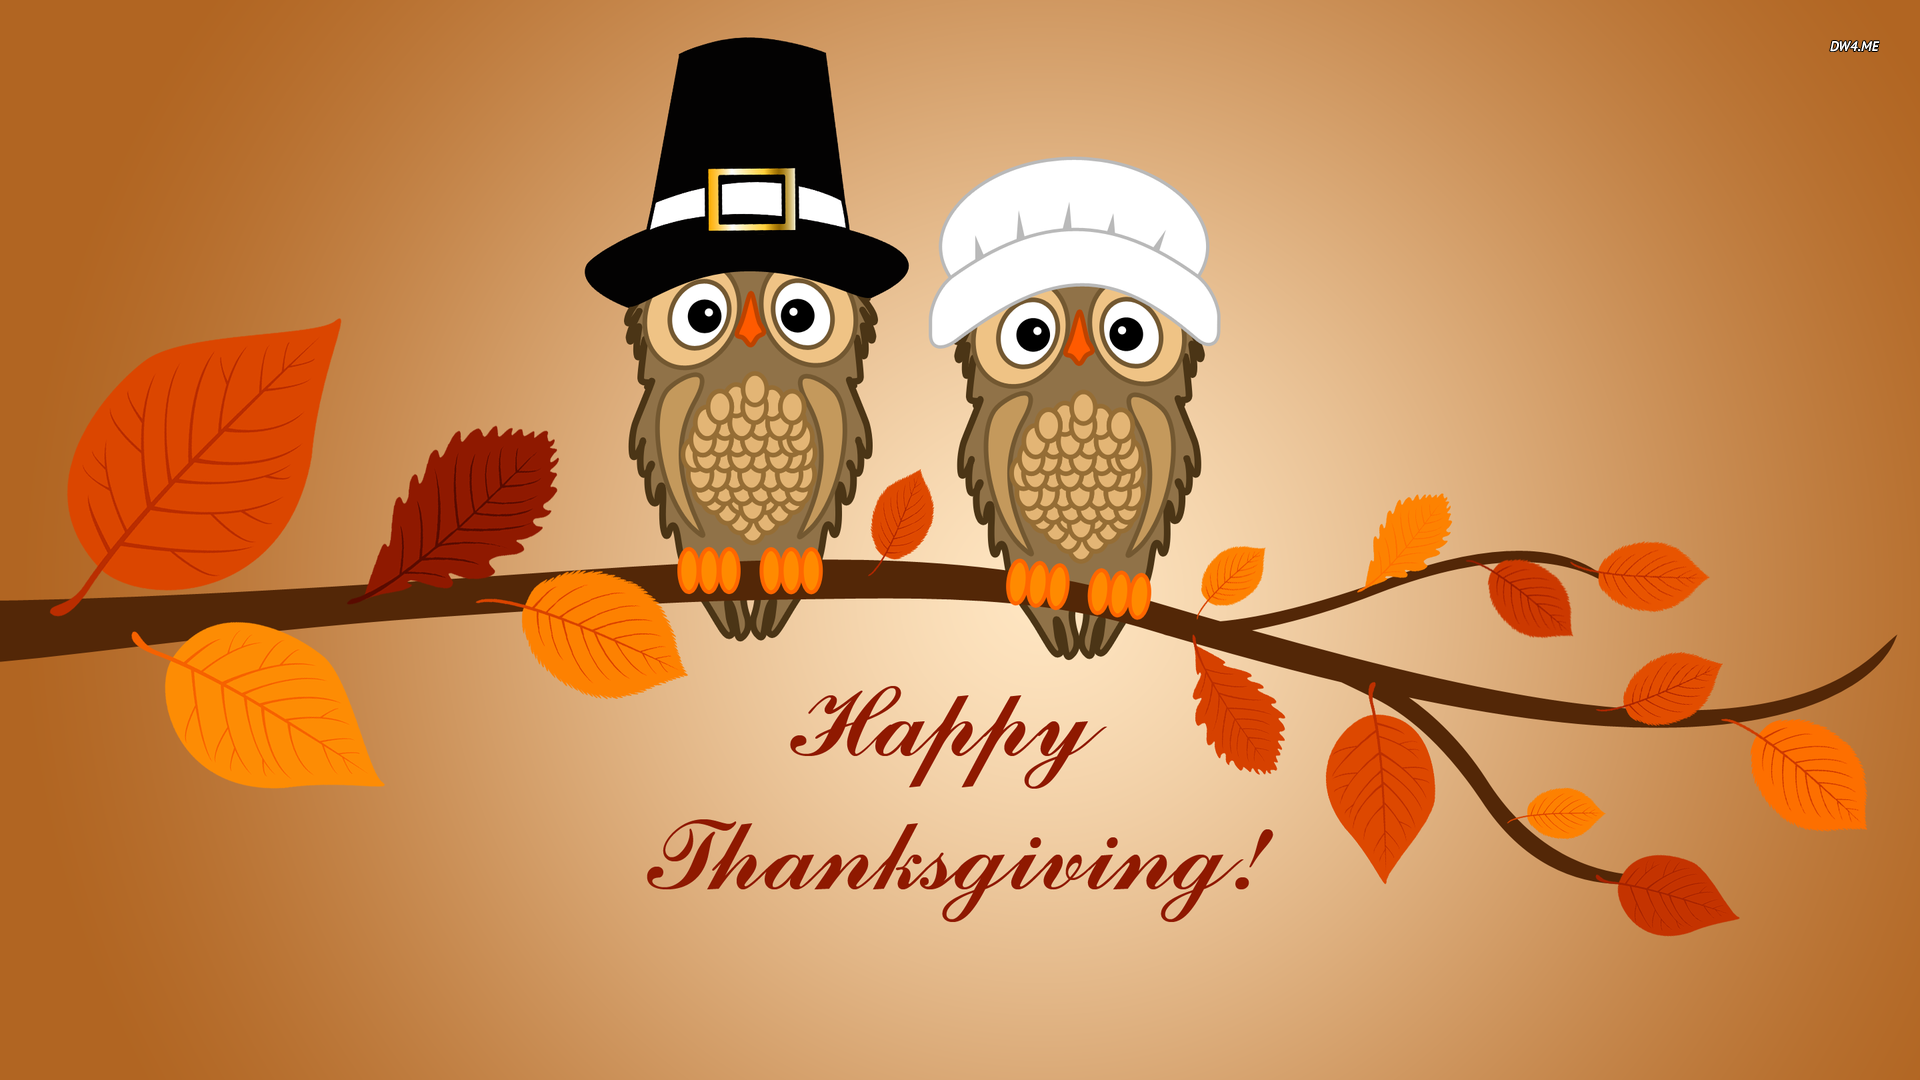 Happy Thanksgiving Wallpaper 1920X1080